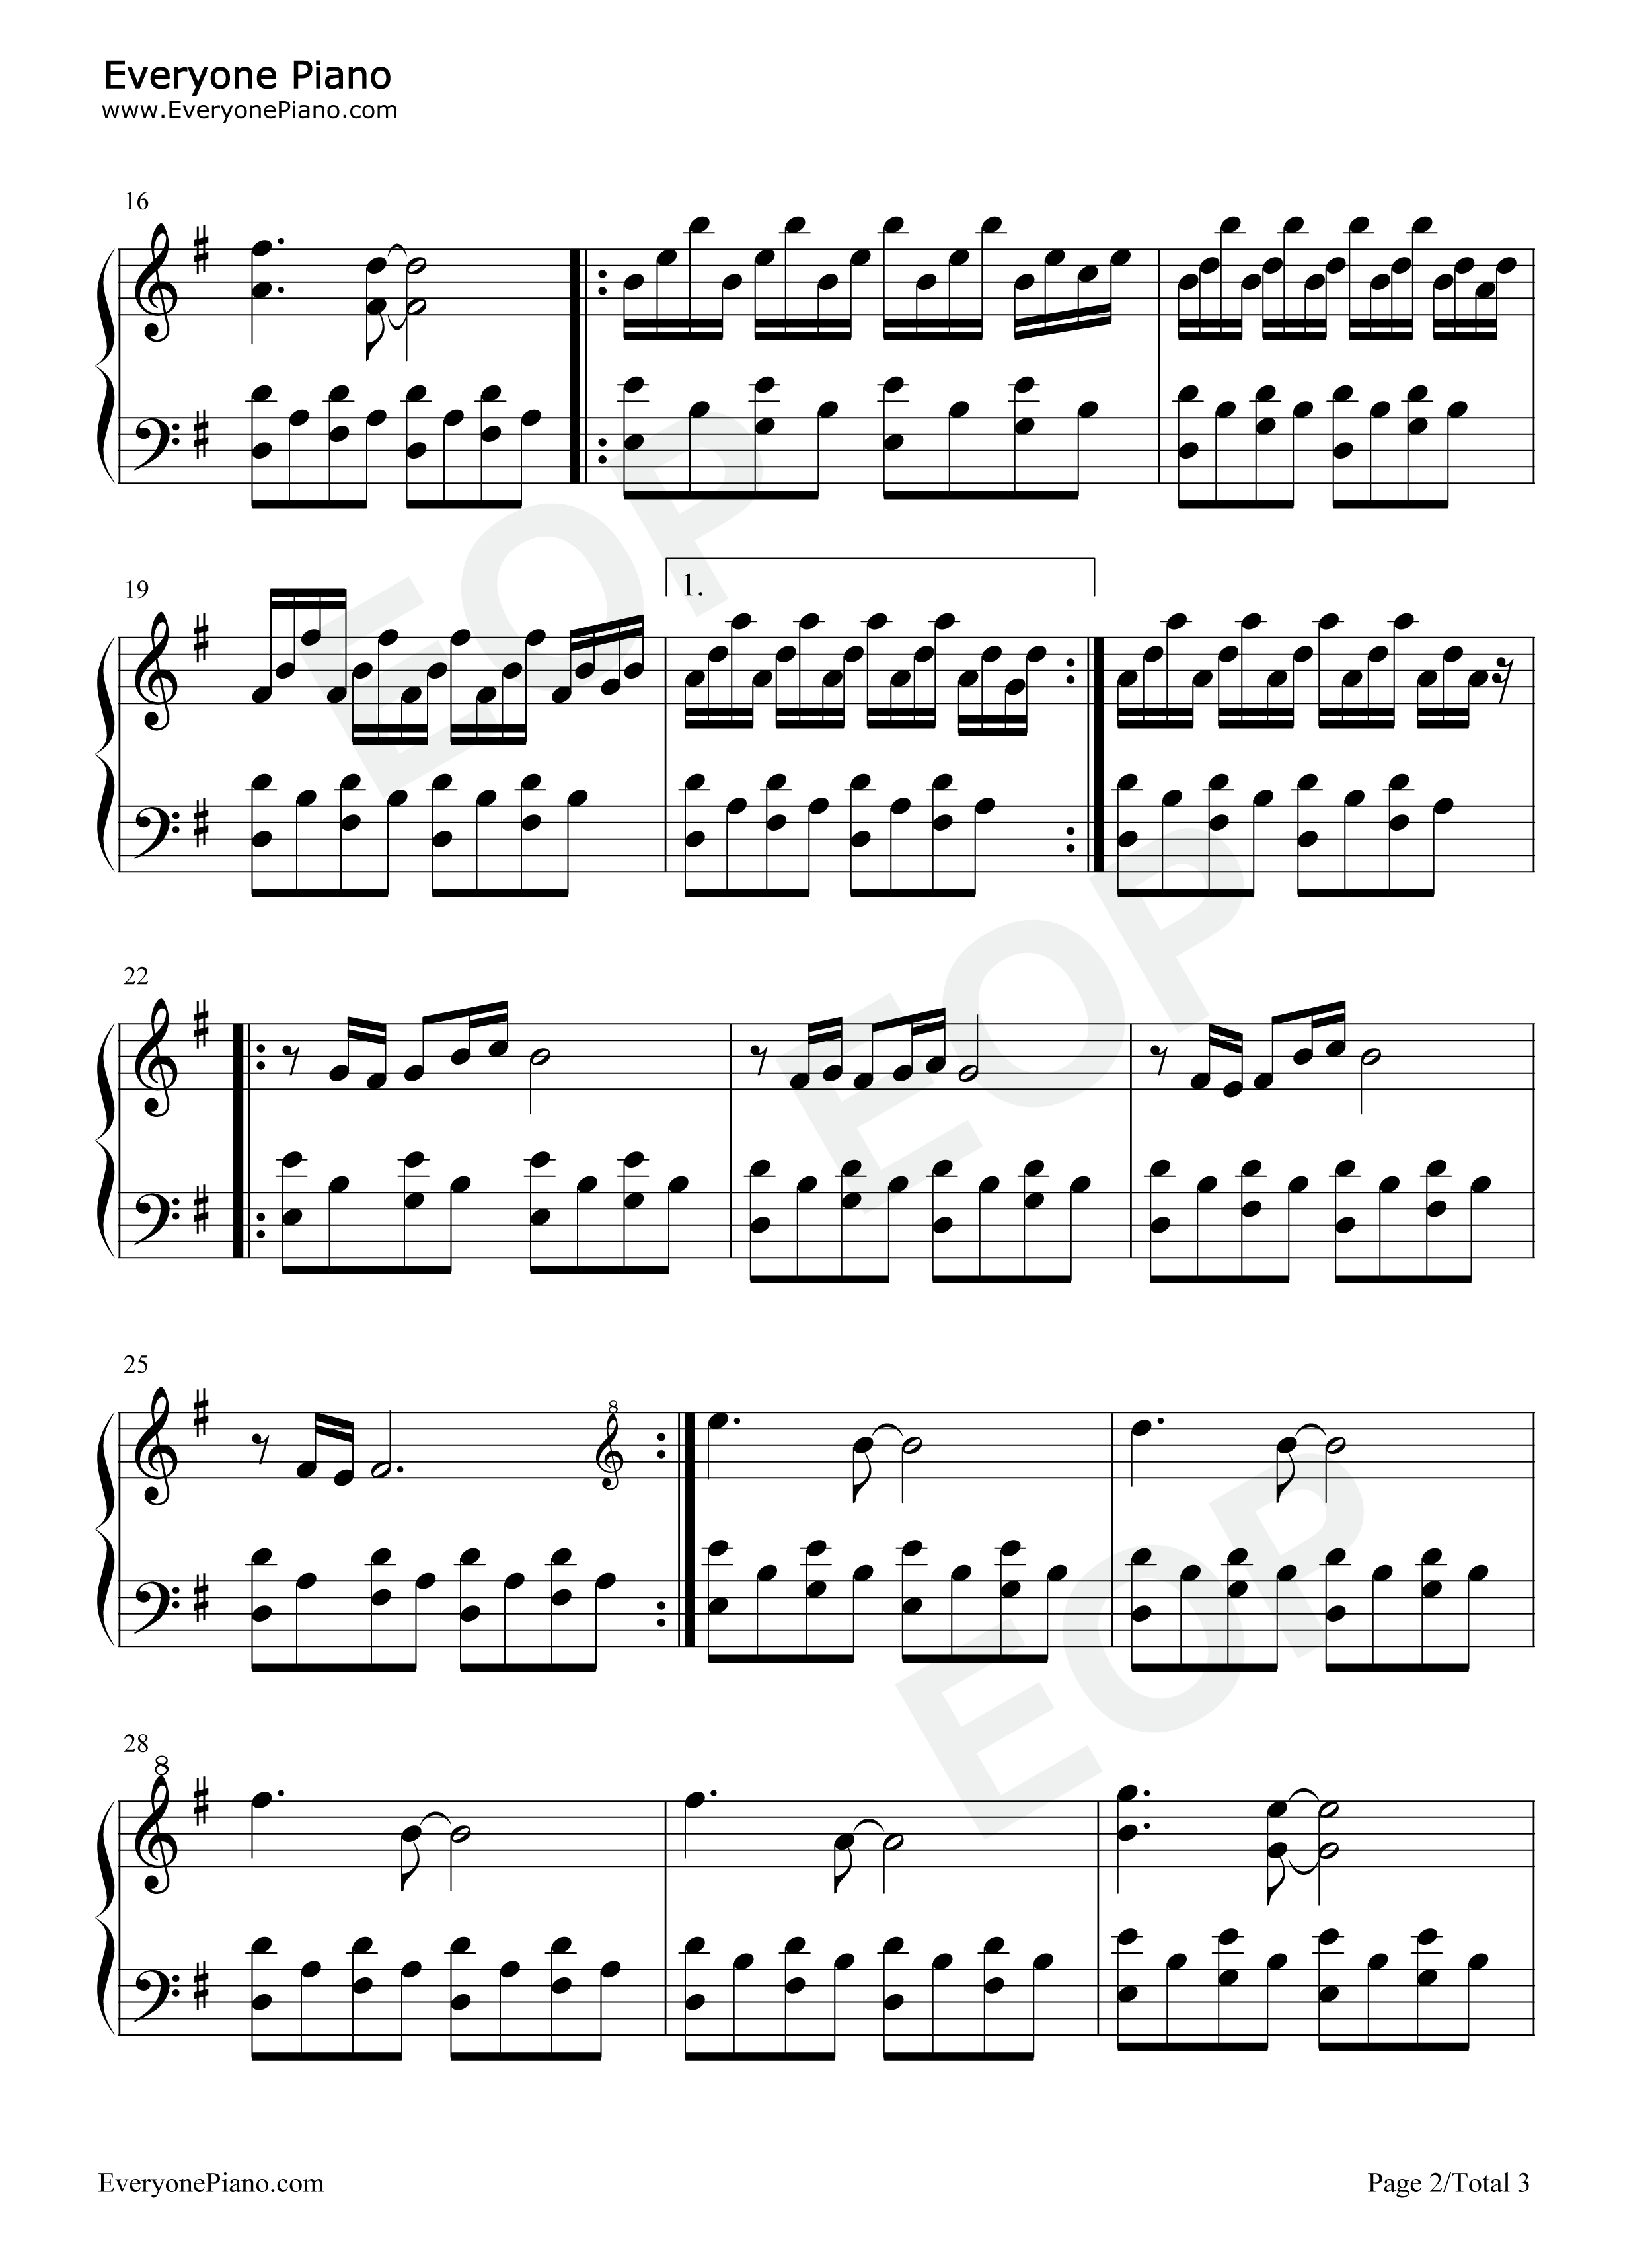 amelie sheet music book pdf